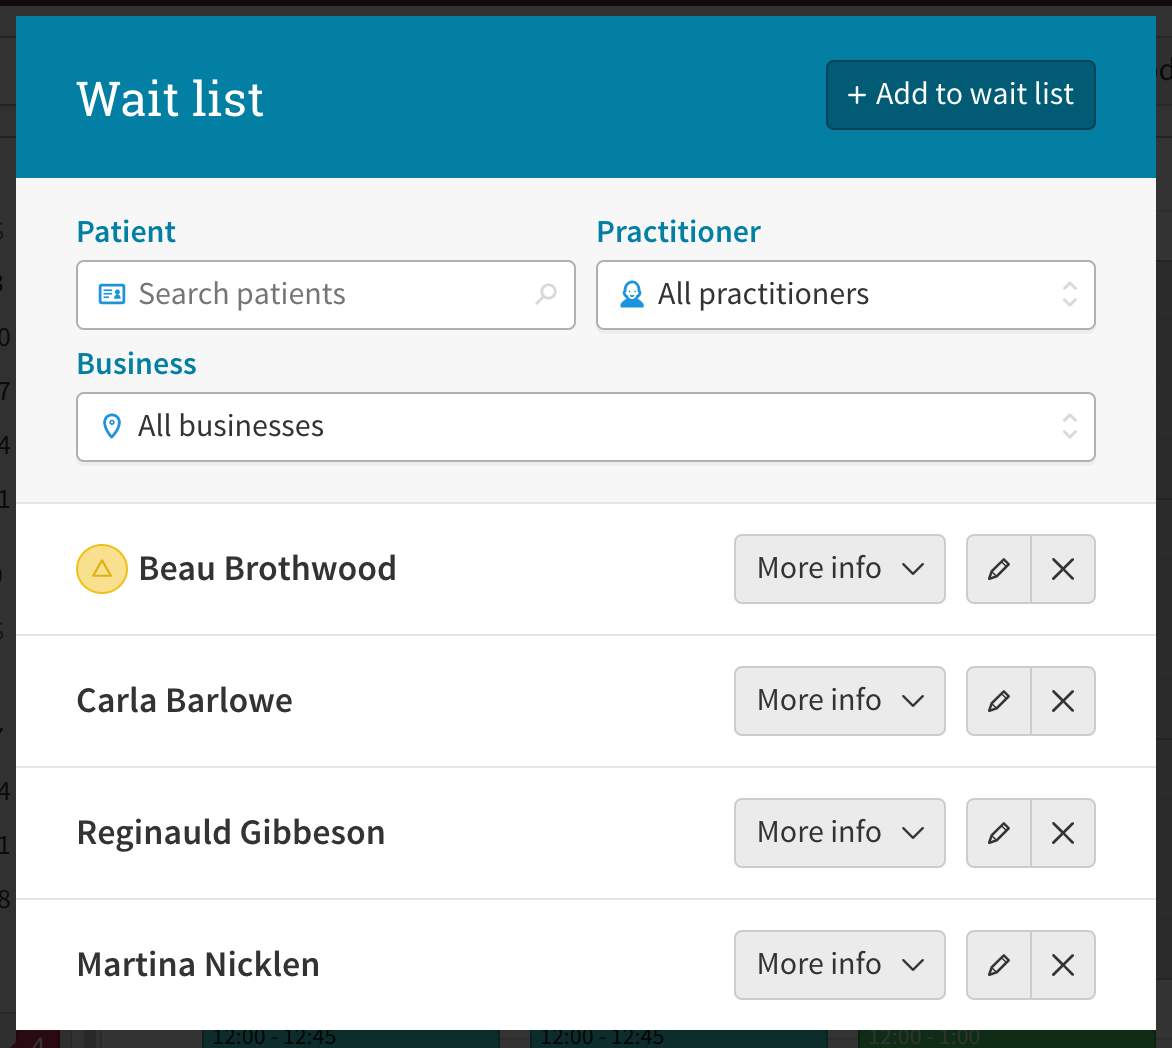 A screenshot of the wait list feature in Cliniko